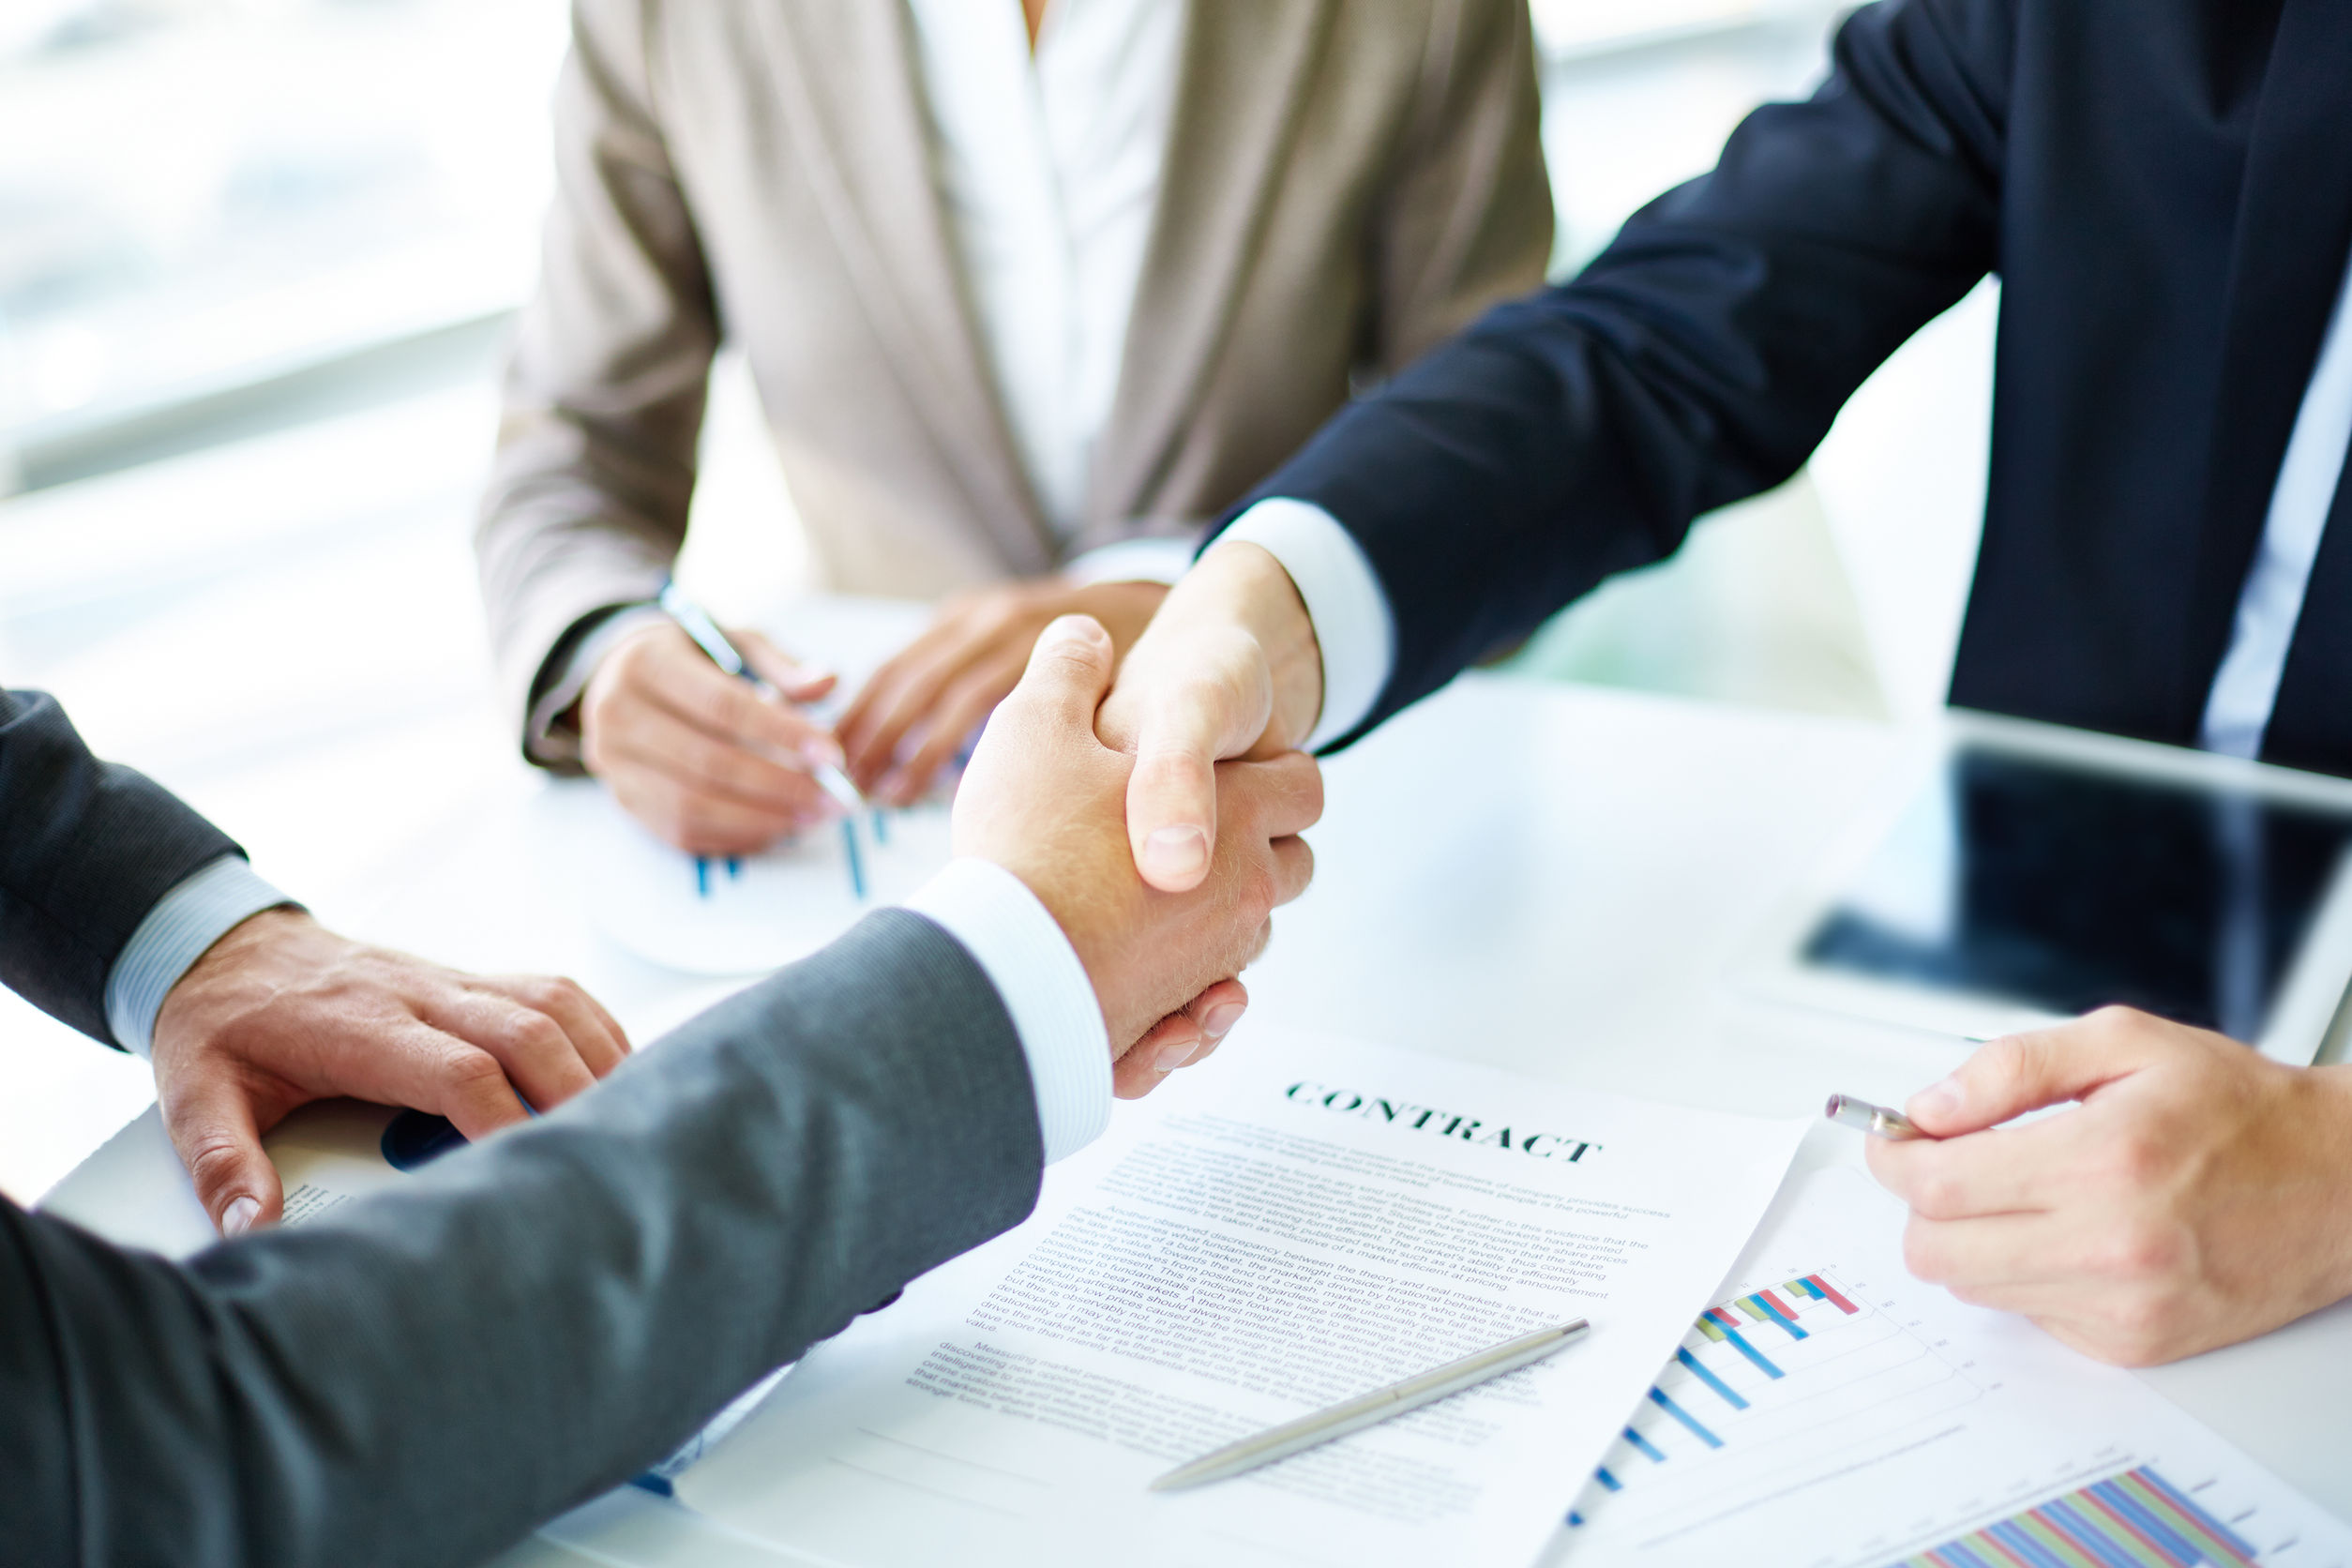 An image of shaking hands over a contract.